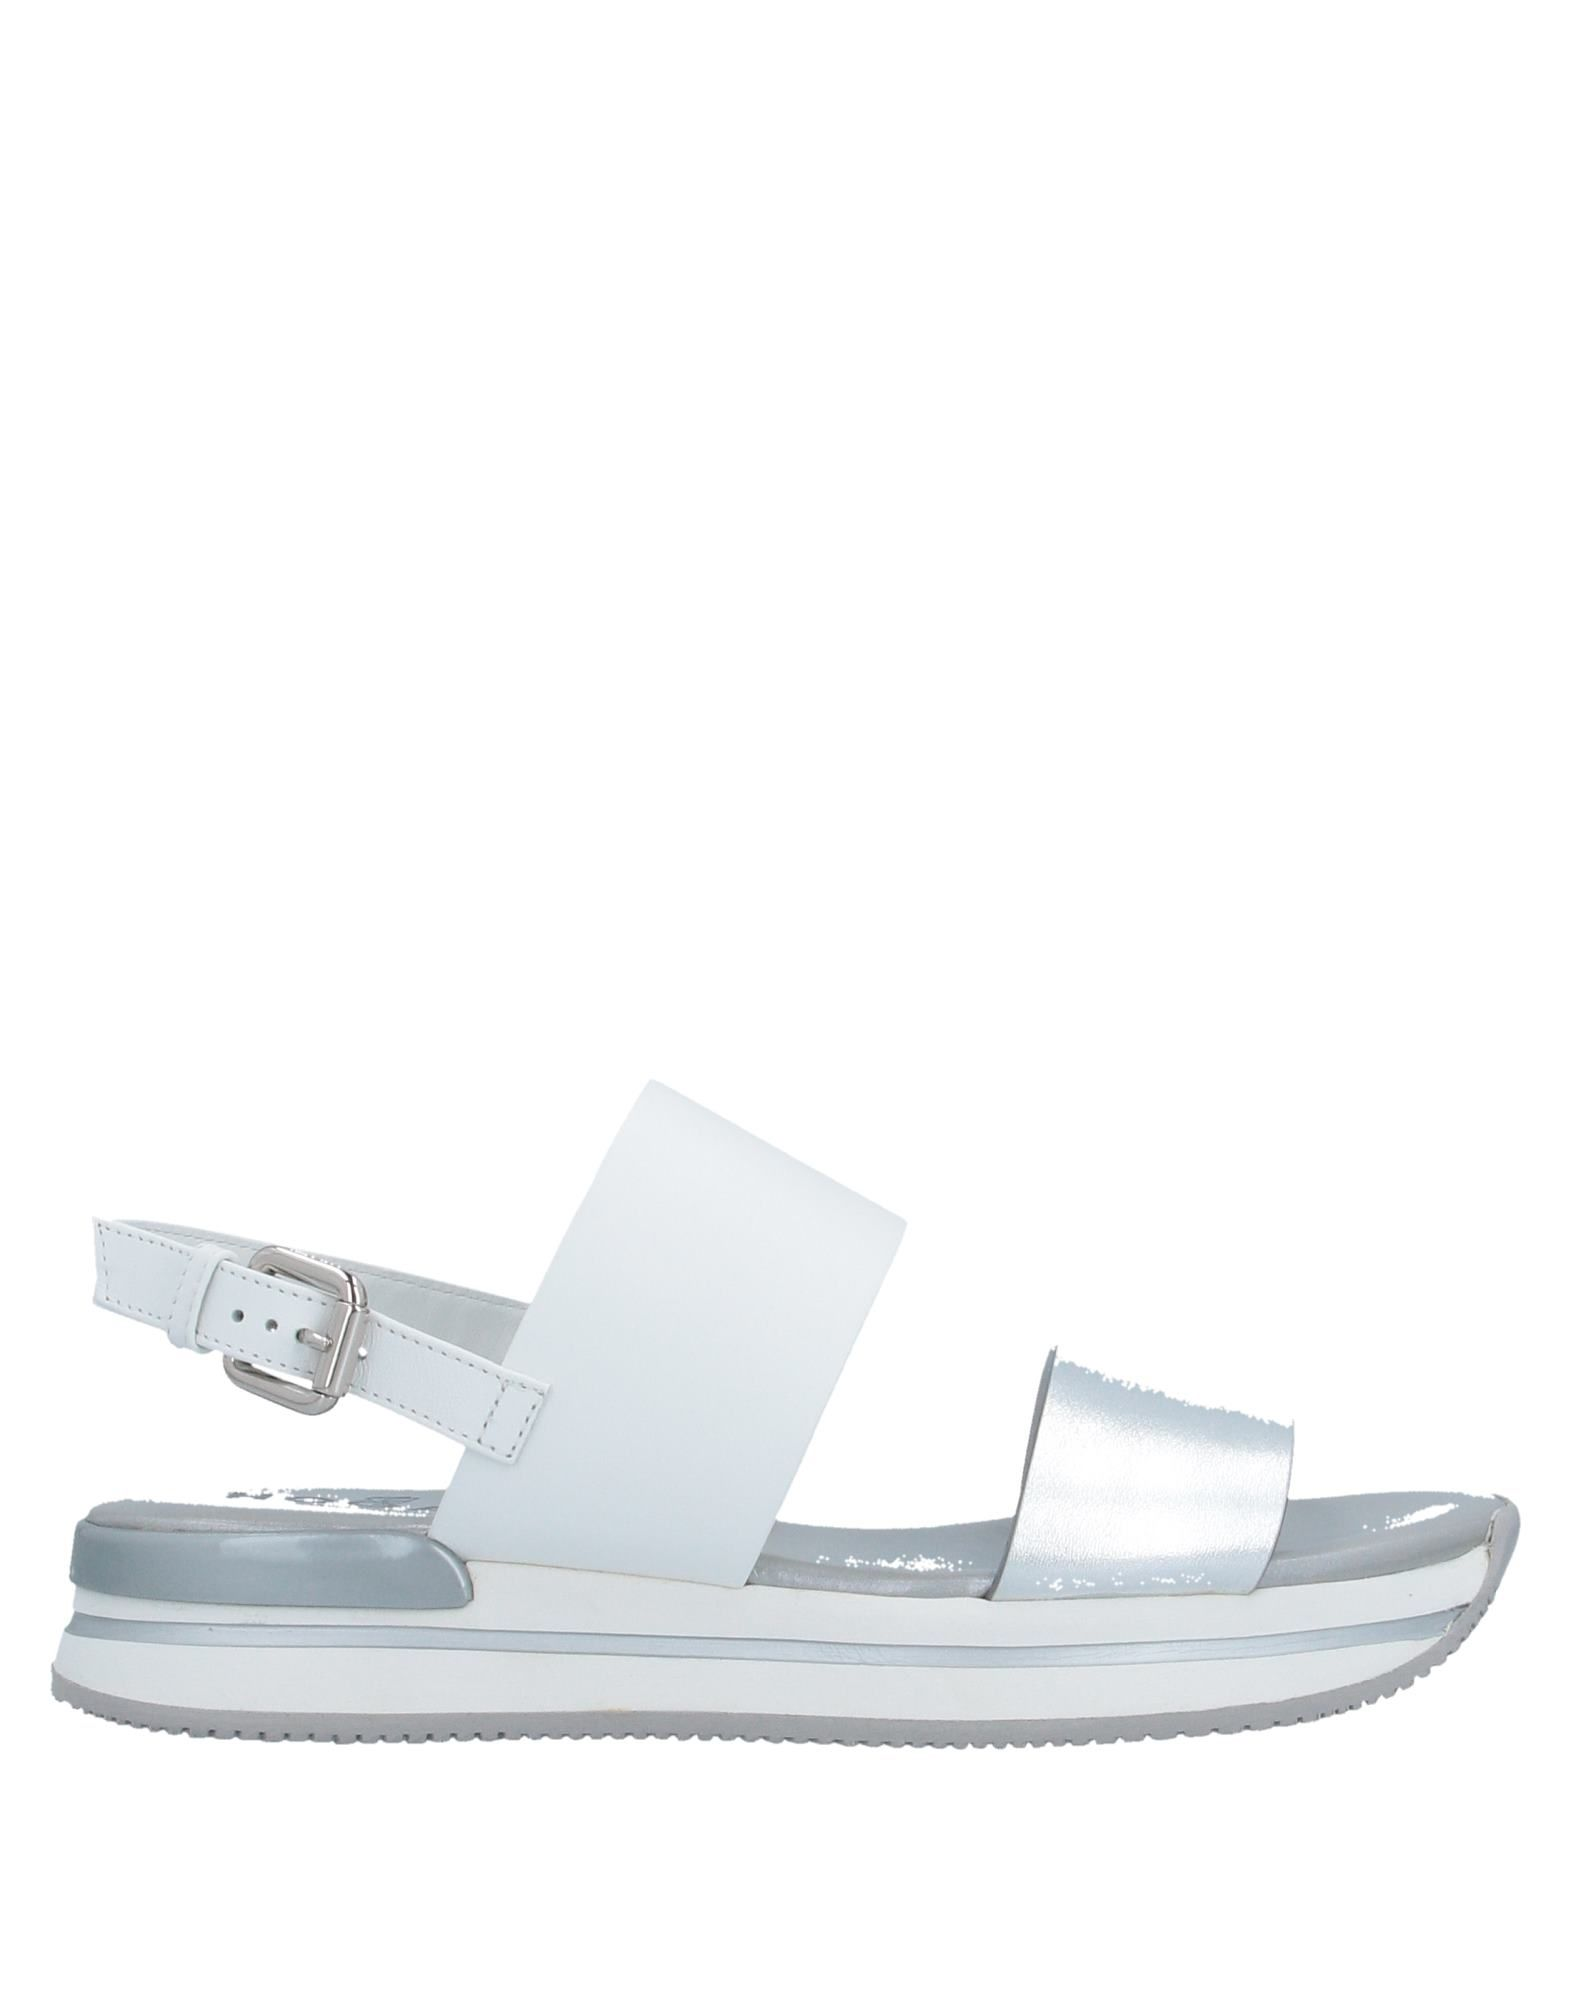 HOGAN Sandals. laminated effect, no appliqués, two-tone, buckling ankle strap closure, round toeline, flat, leather lining, rubber cleated sole, contains non-textile parts of animal origin. Soft Leather